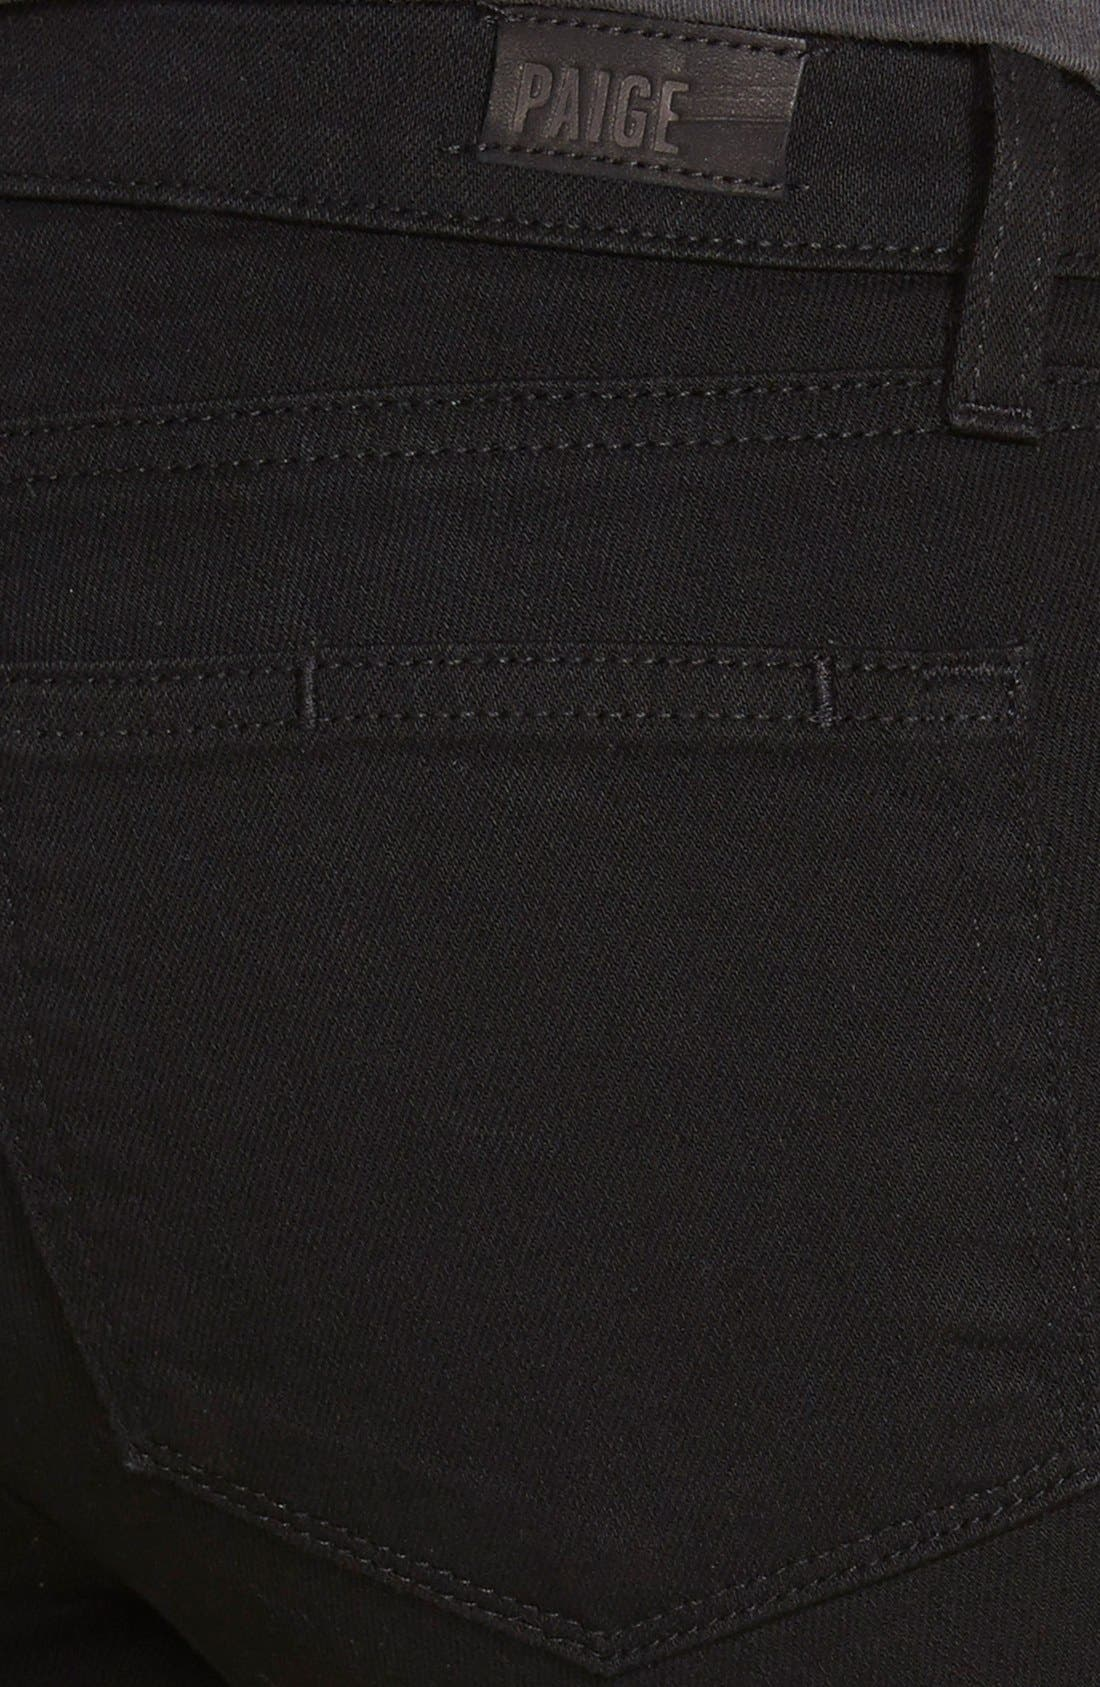 Alternate Image 3  - Paige Denim 'Verdugo' Ankle Ultra Skinny Jeans (Black Arlo Destructed)